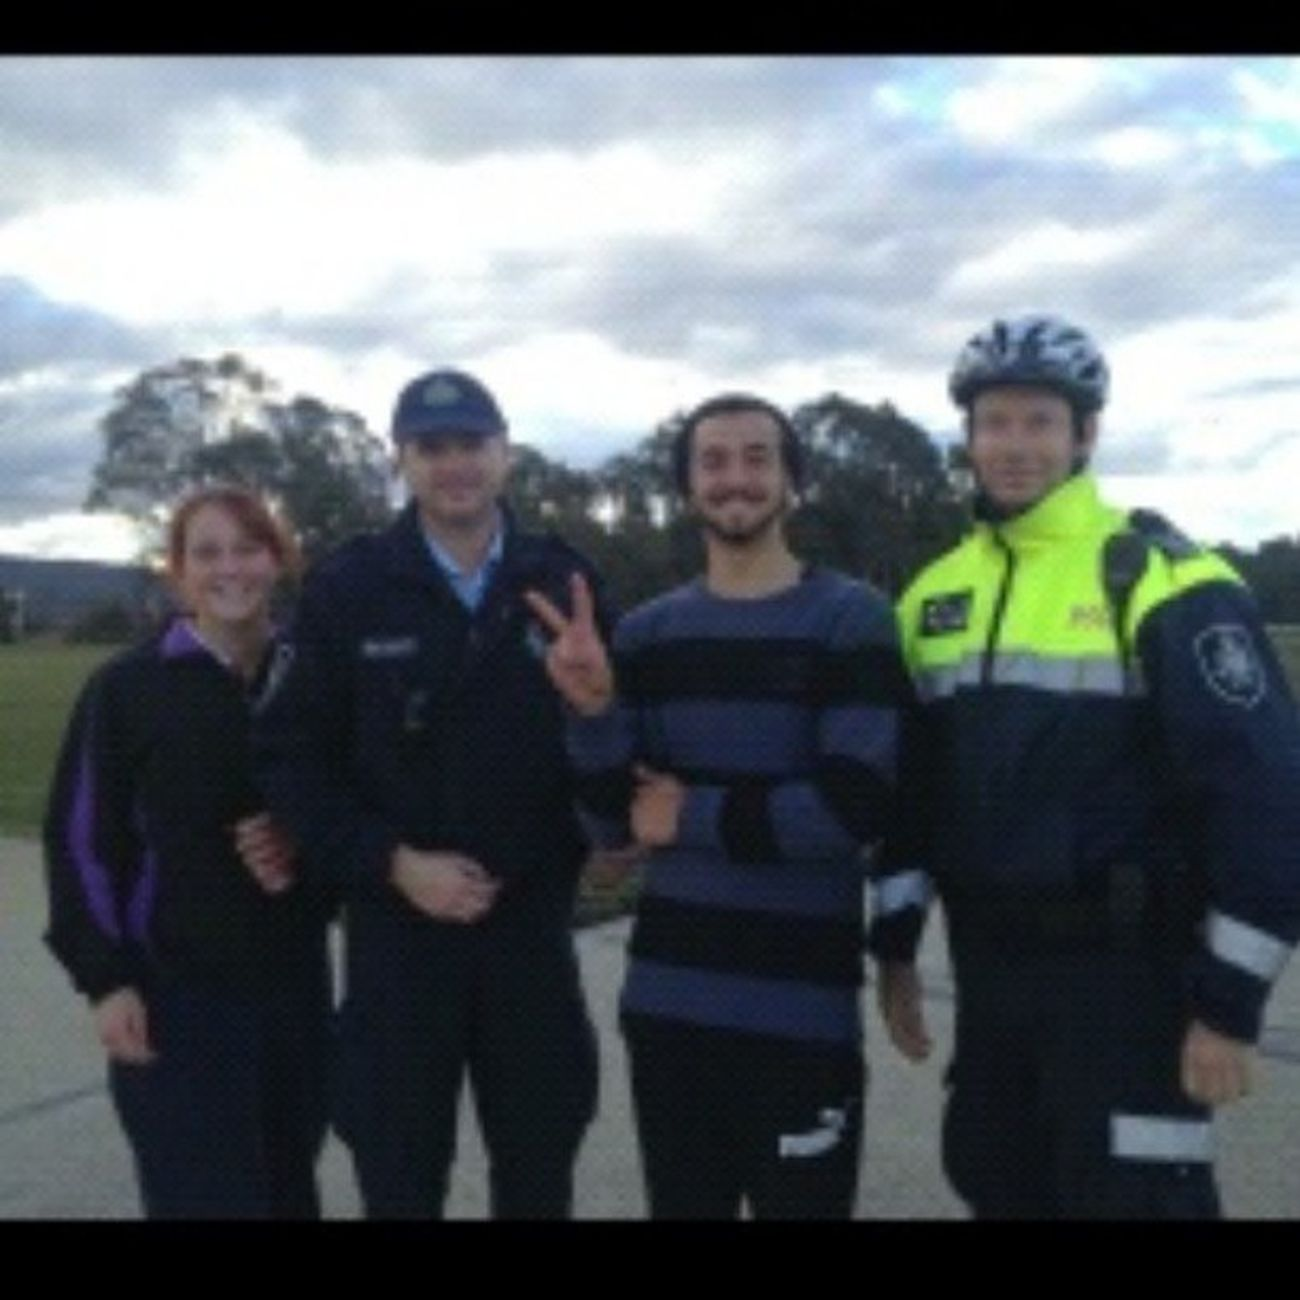 Meet some random policemen we found in Canberra :) Kangaa Canberraaa Ourcolourisbleck Straya